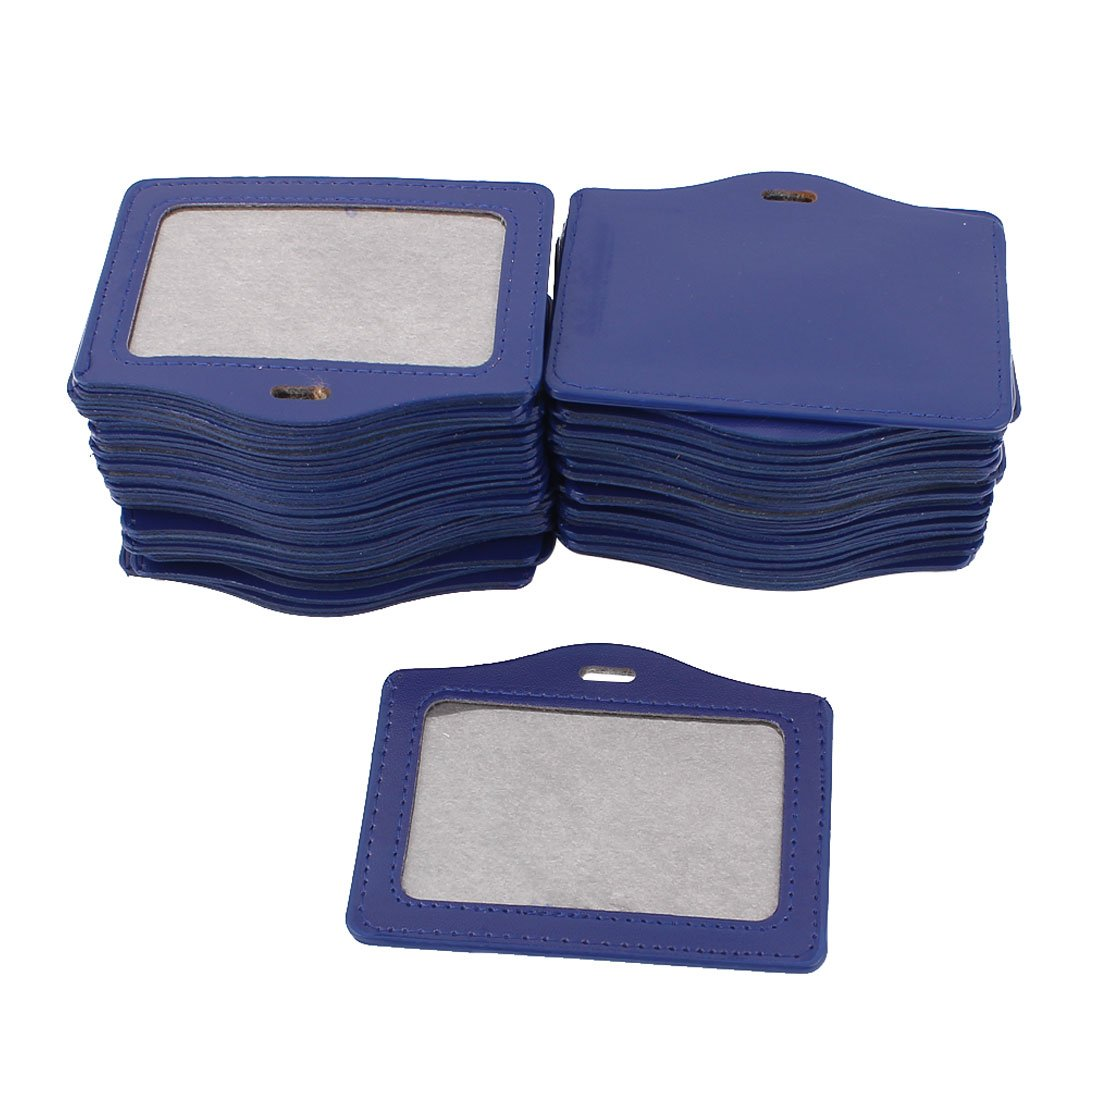 uxcell Faux Leather School Office Horizontal Business ID Badge Card Holder 50Pcs Blue